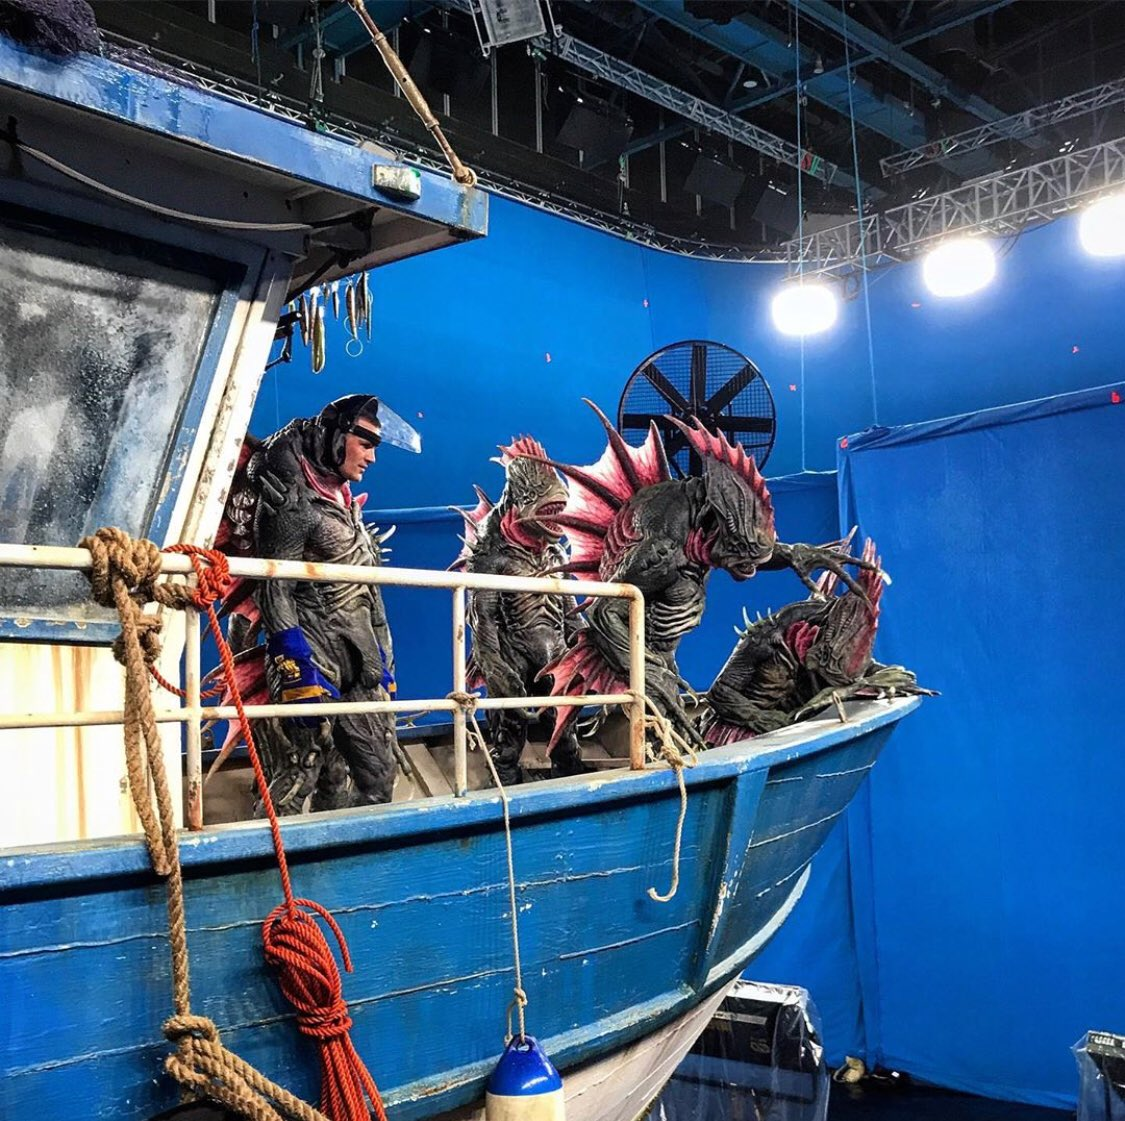 Marvel: use cgi, practical is too much effort Aquaman: HOLD